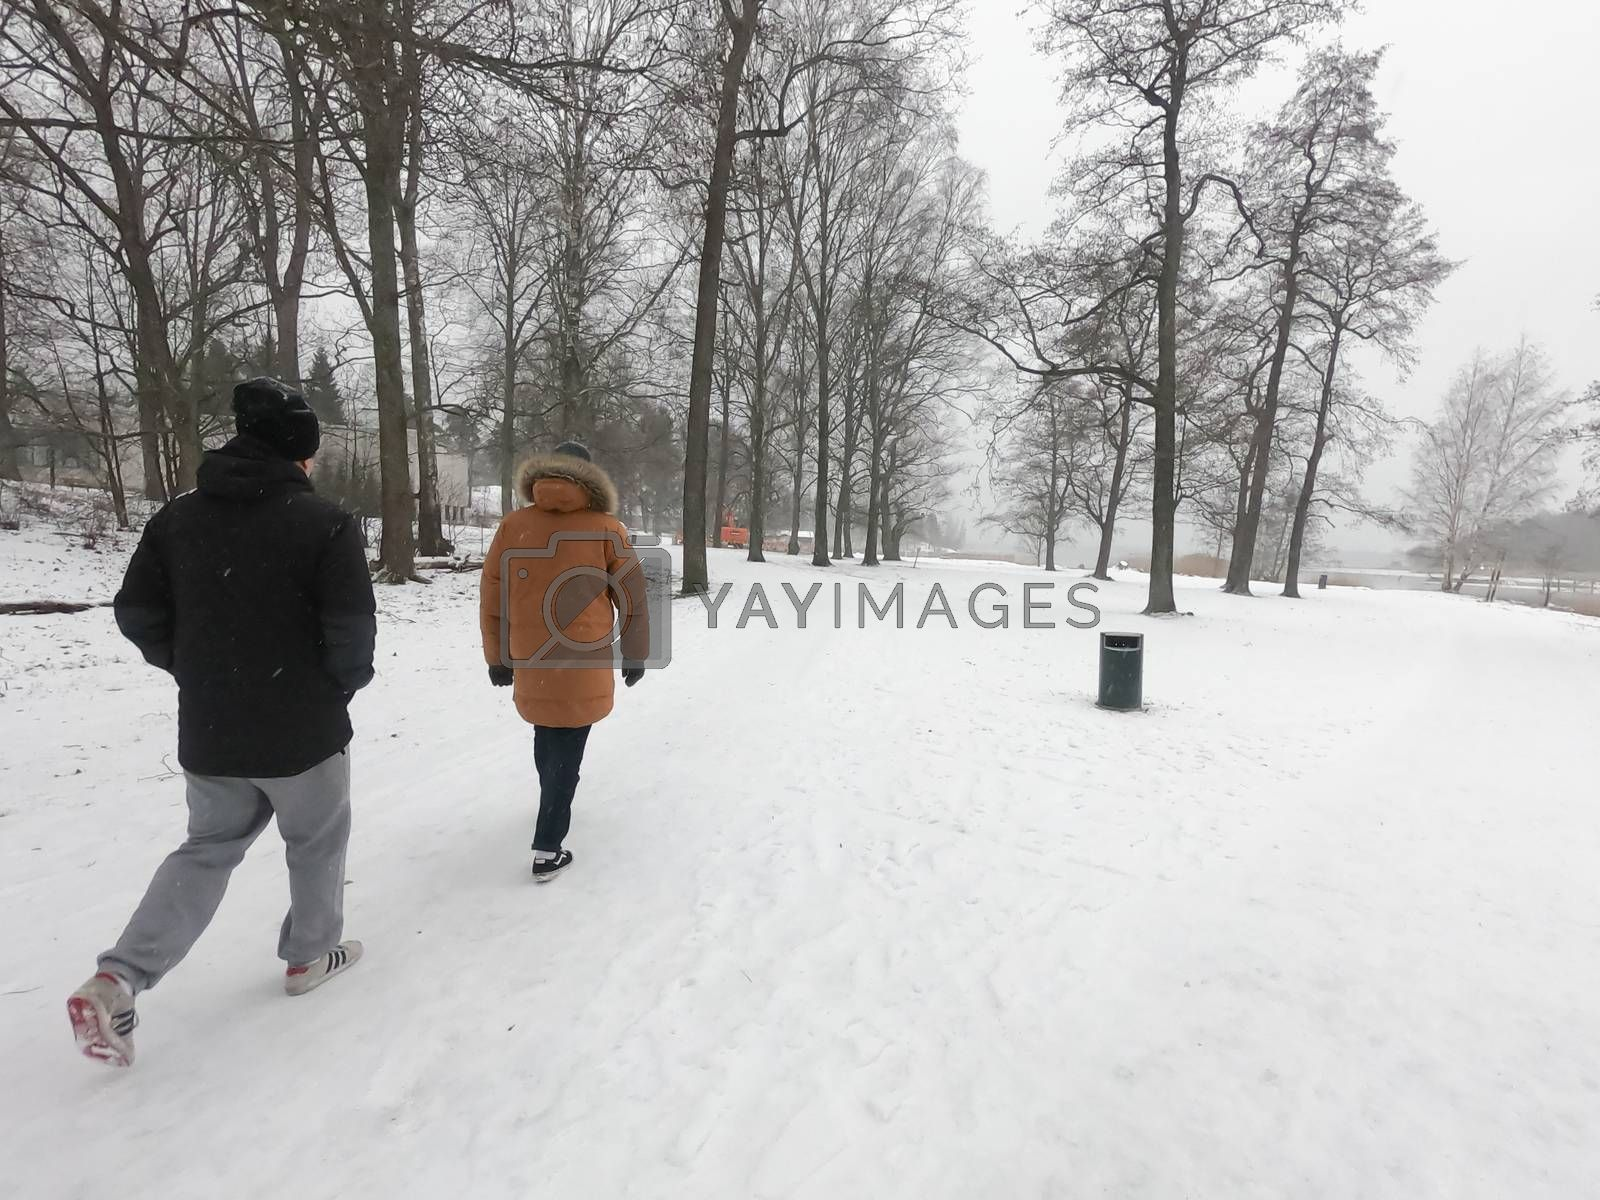 People have walked at a nature park during covid-19 pandemic soc by animagesdesign